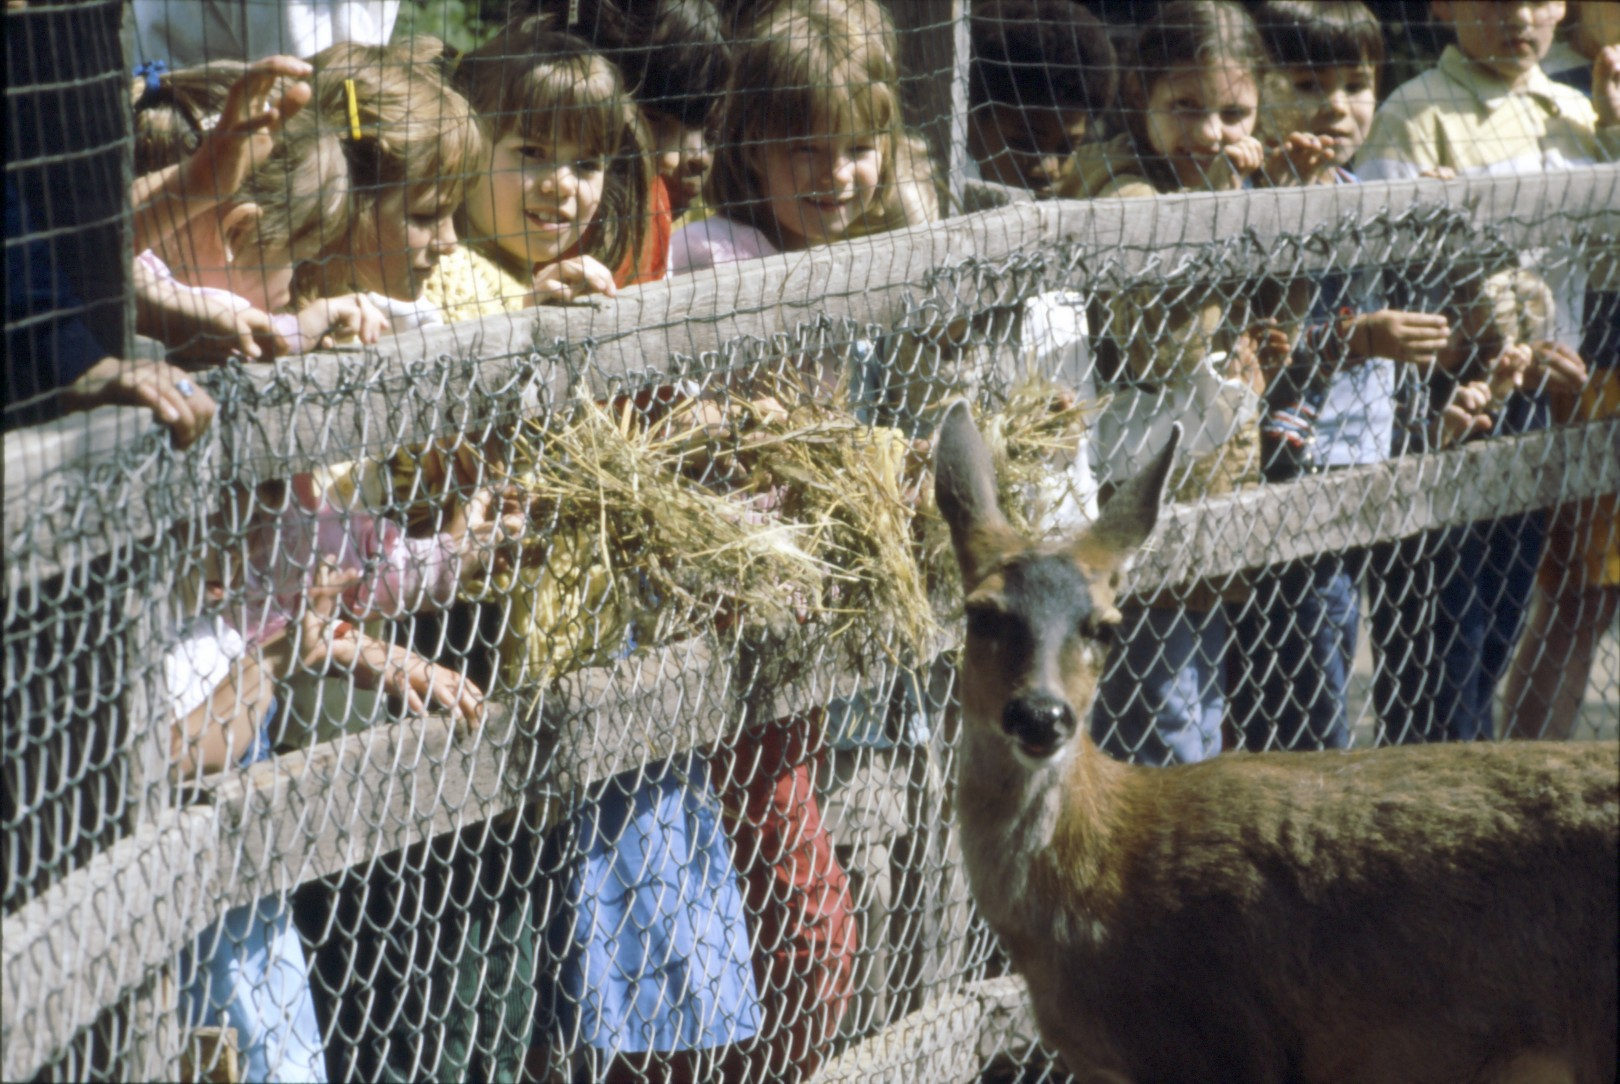 Vintage Pictures of Alaska Zoo 387.jpg